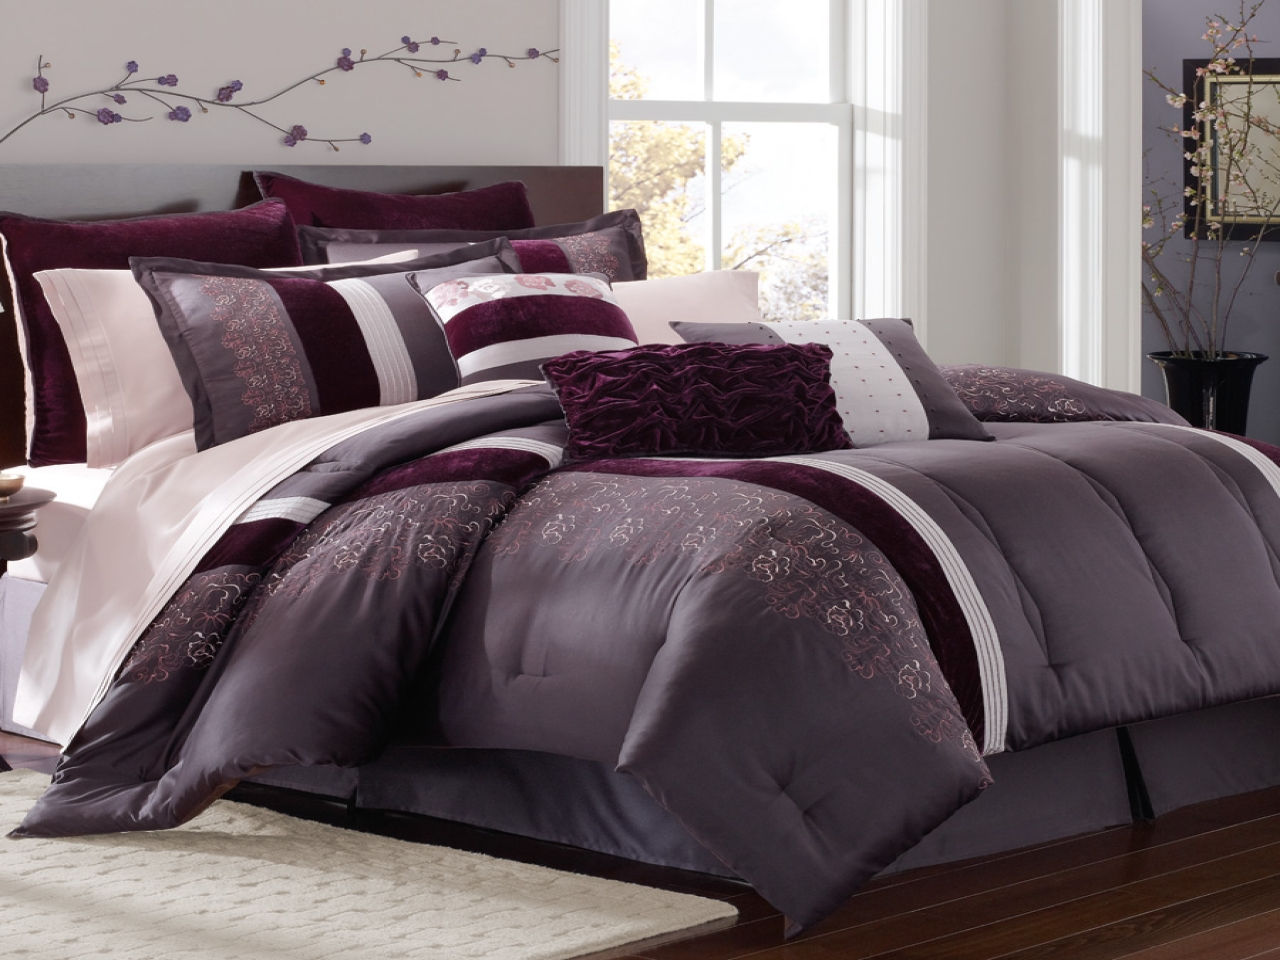 Purple Flower Comforter Set | Purple and Gold Comforter Set | Purple Comforter Sets